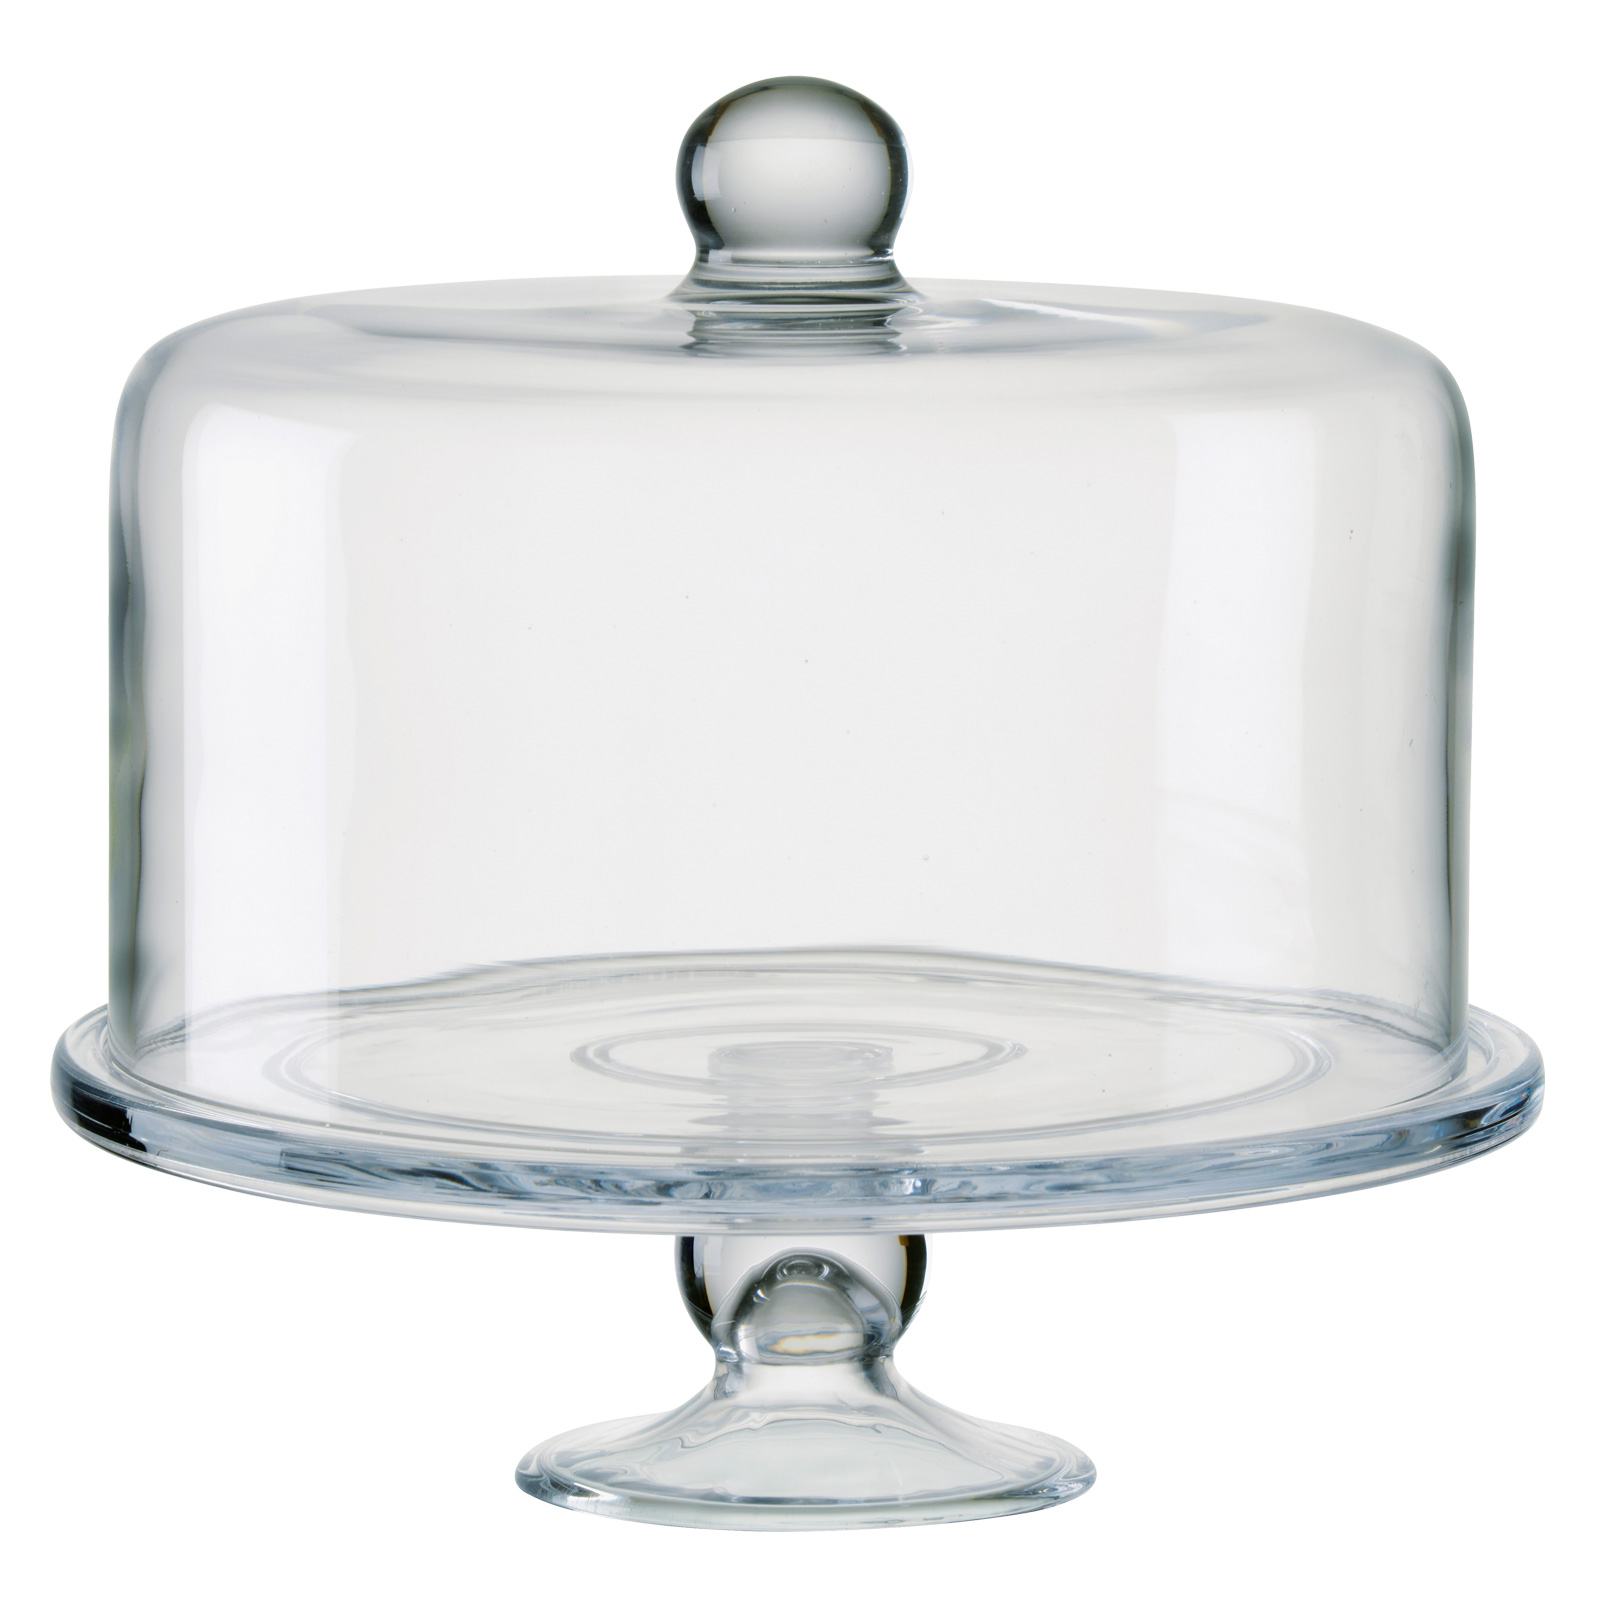 Simplicity Cake Stand with Straight Sided Dome by Artland